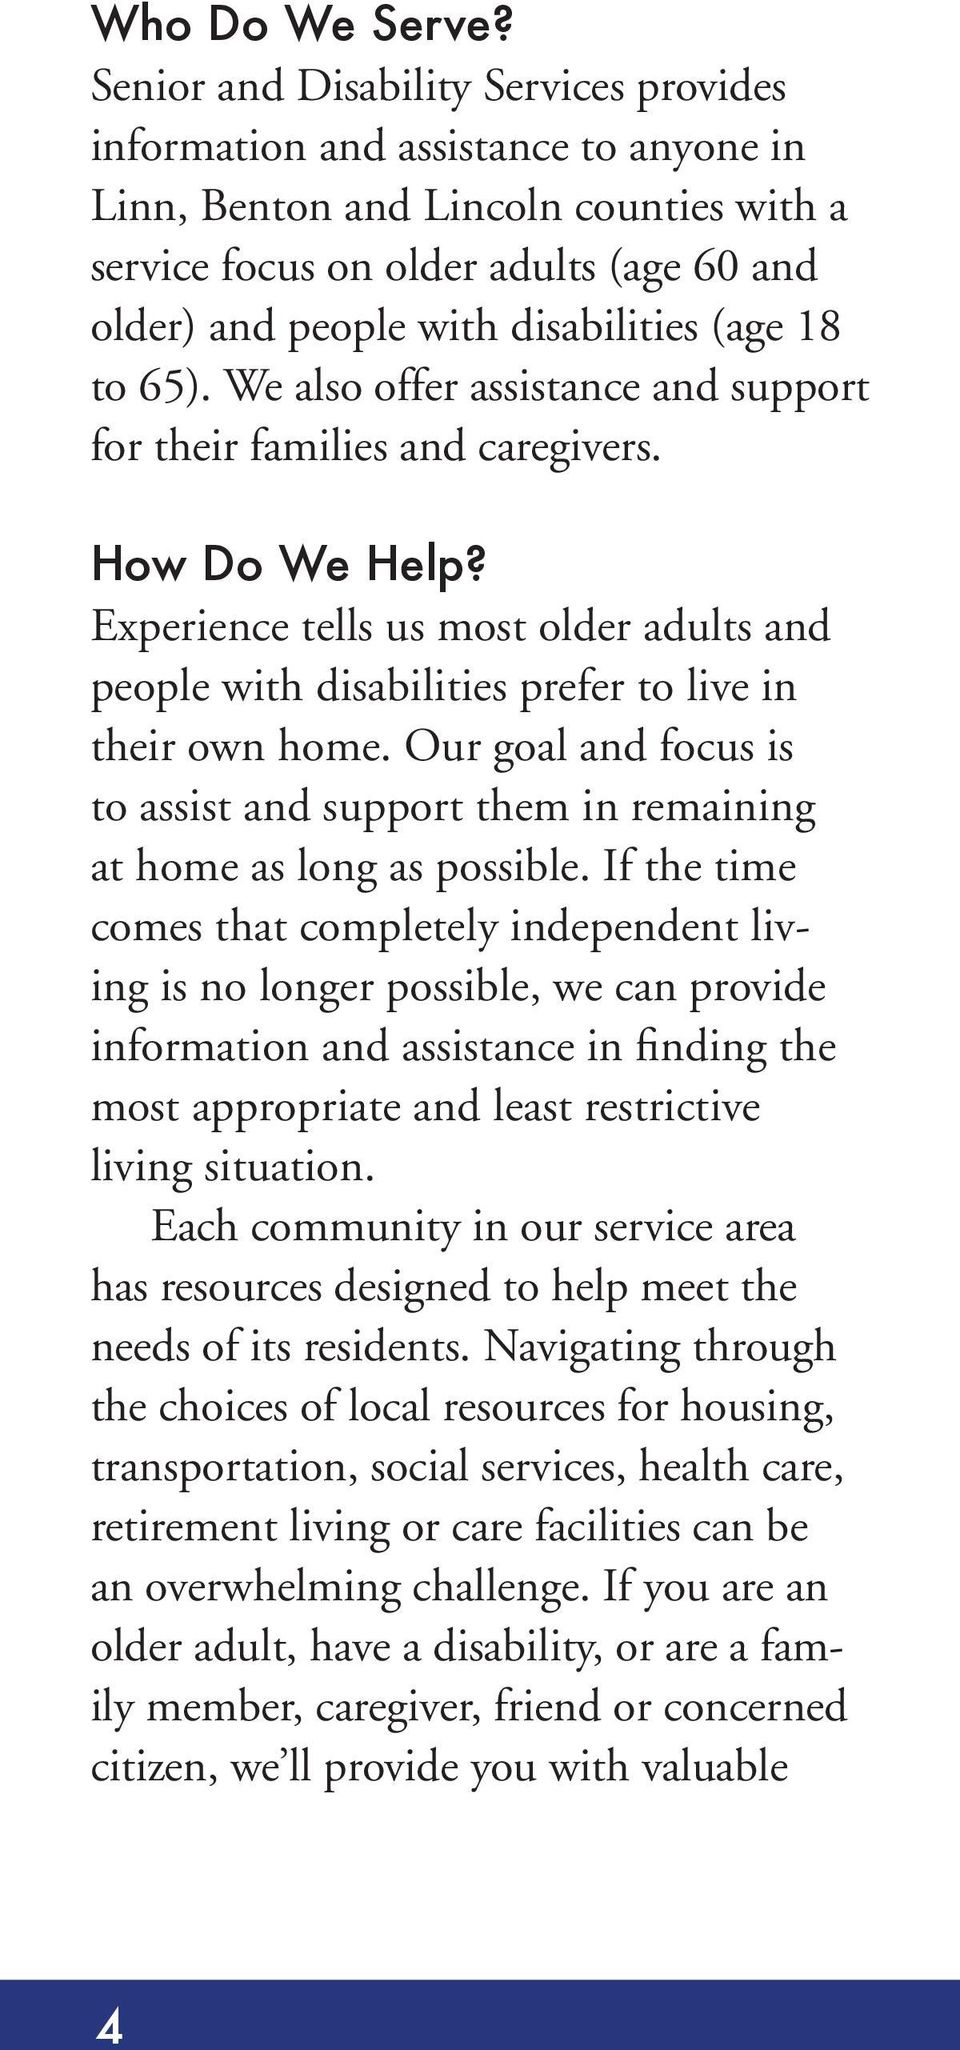 (age 18 to 65). We also offer assistance and support for their families and caregivers. How Do We Help?